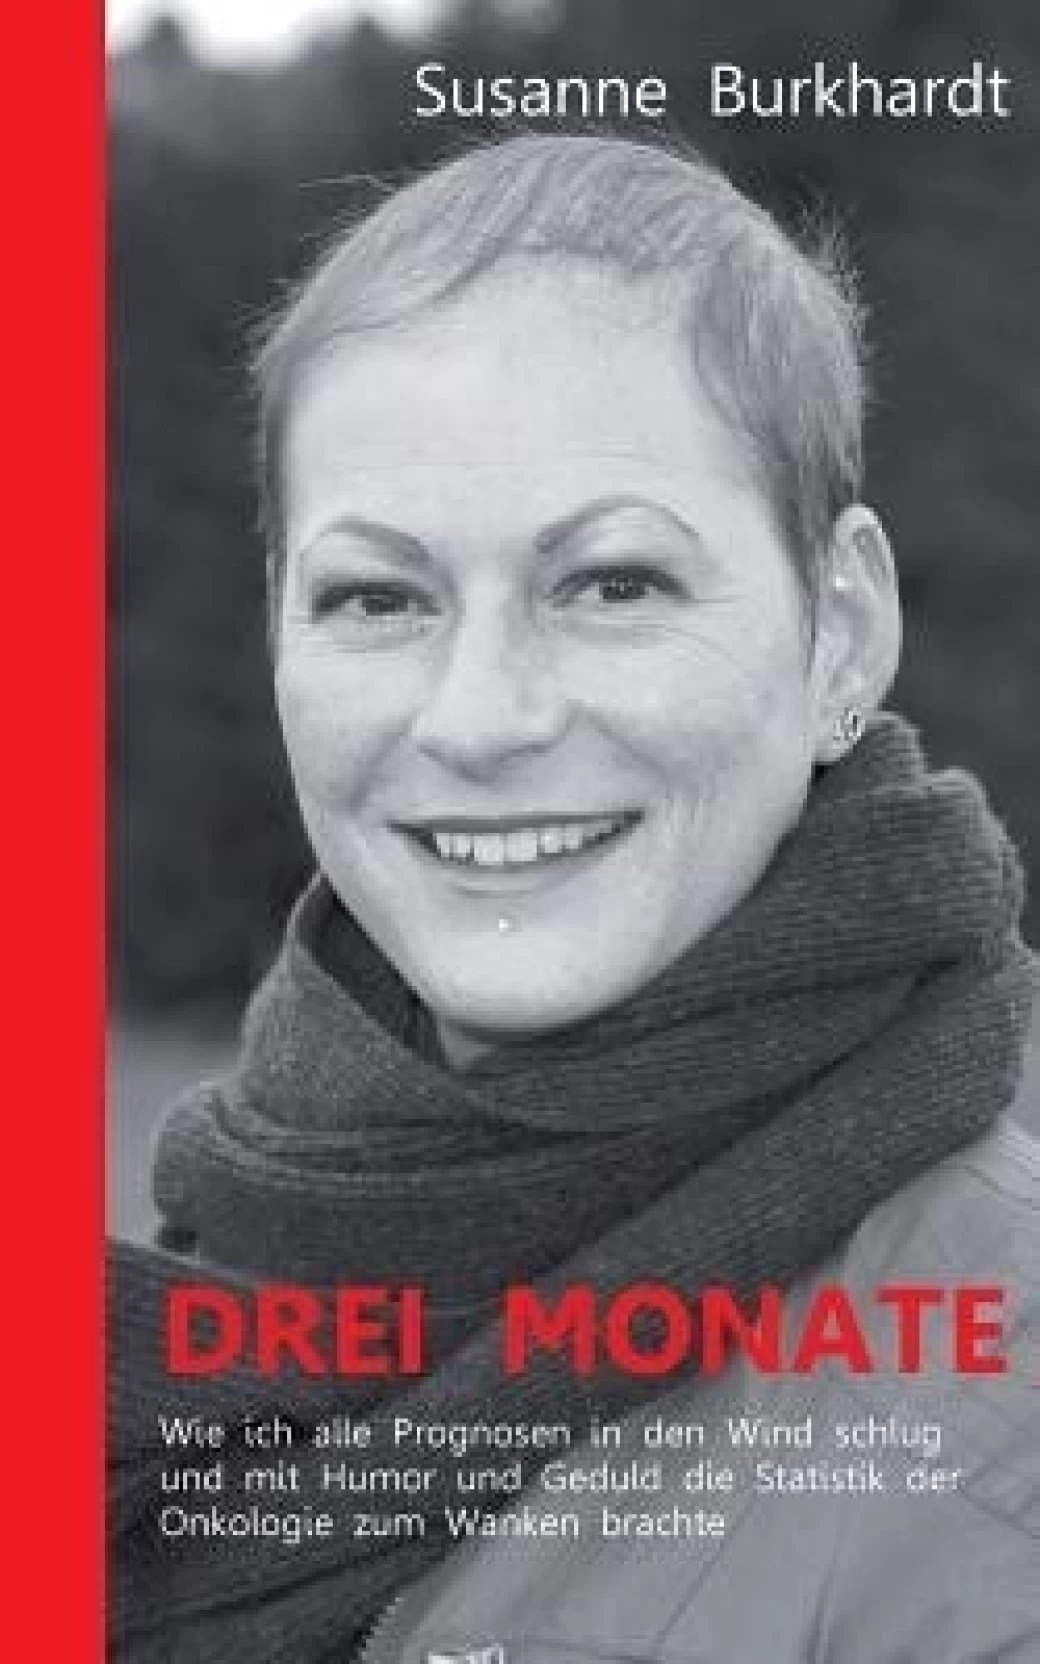 Drei Monate Drei Monate Buy Drei Monate By Susanne Burkhardt At Low Price In